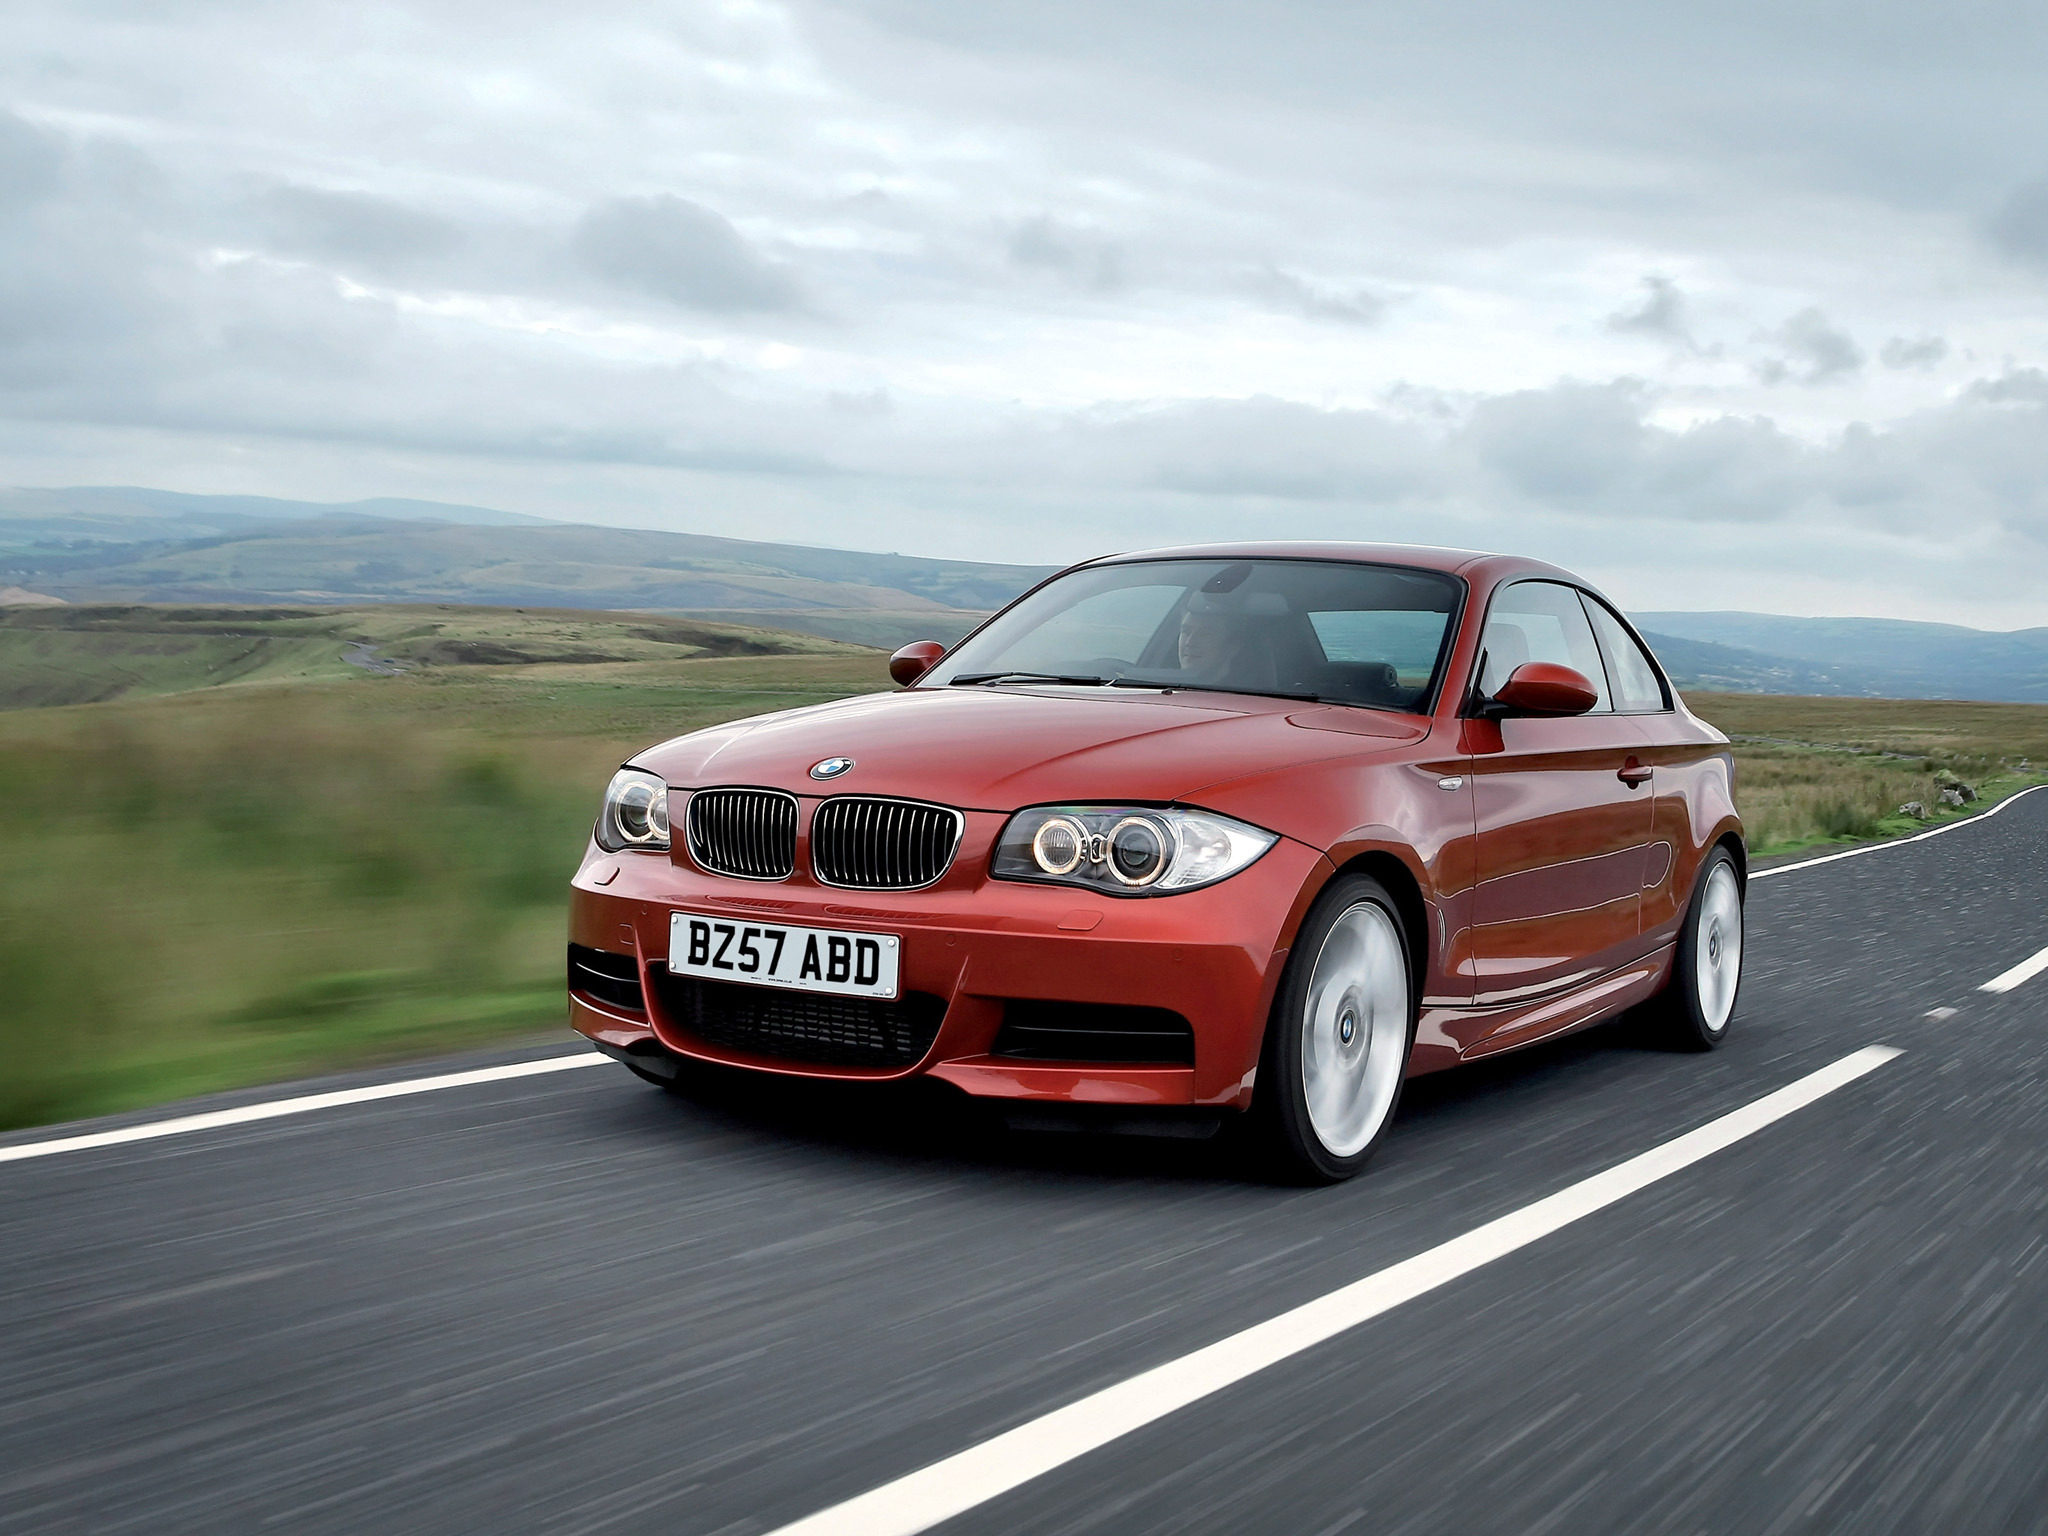 BMW 135i Coupe UK spec E82 Wallpapers Car wallpapers HD 2048x1536